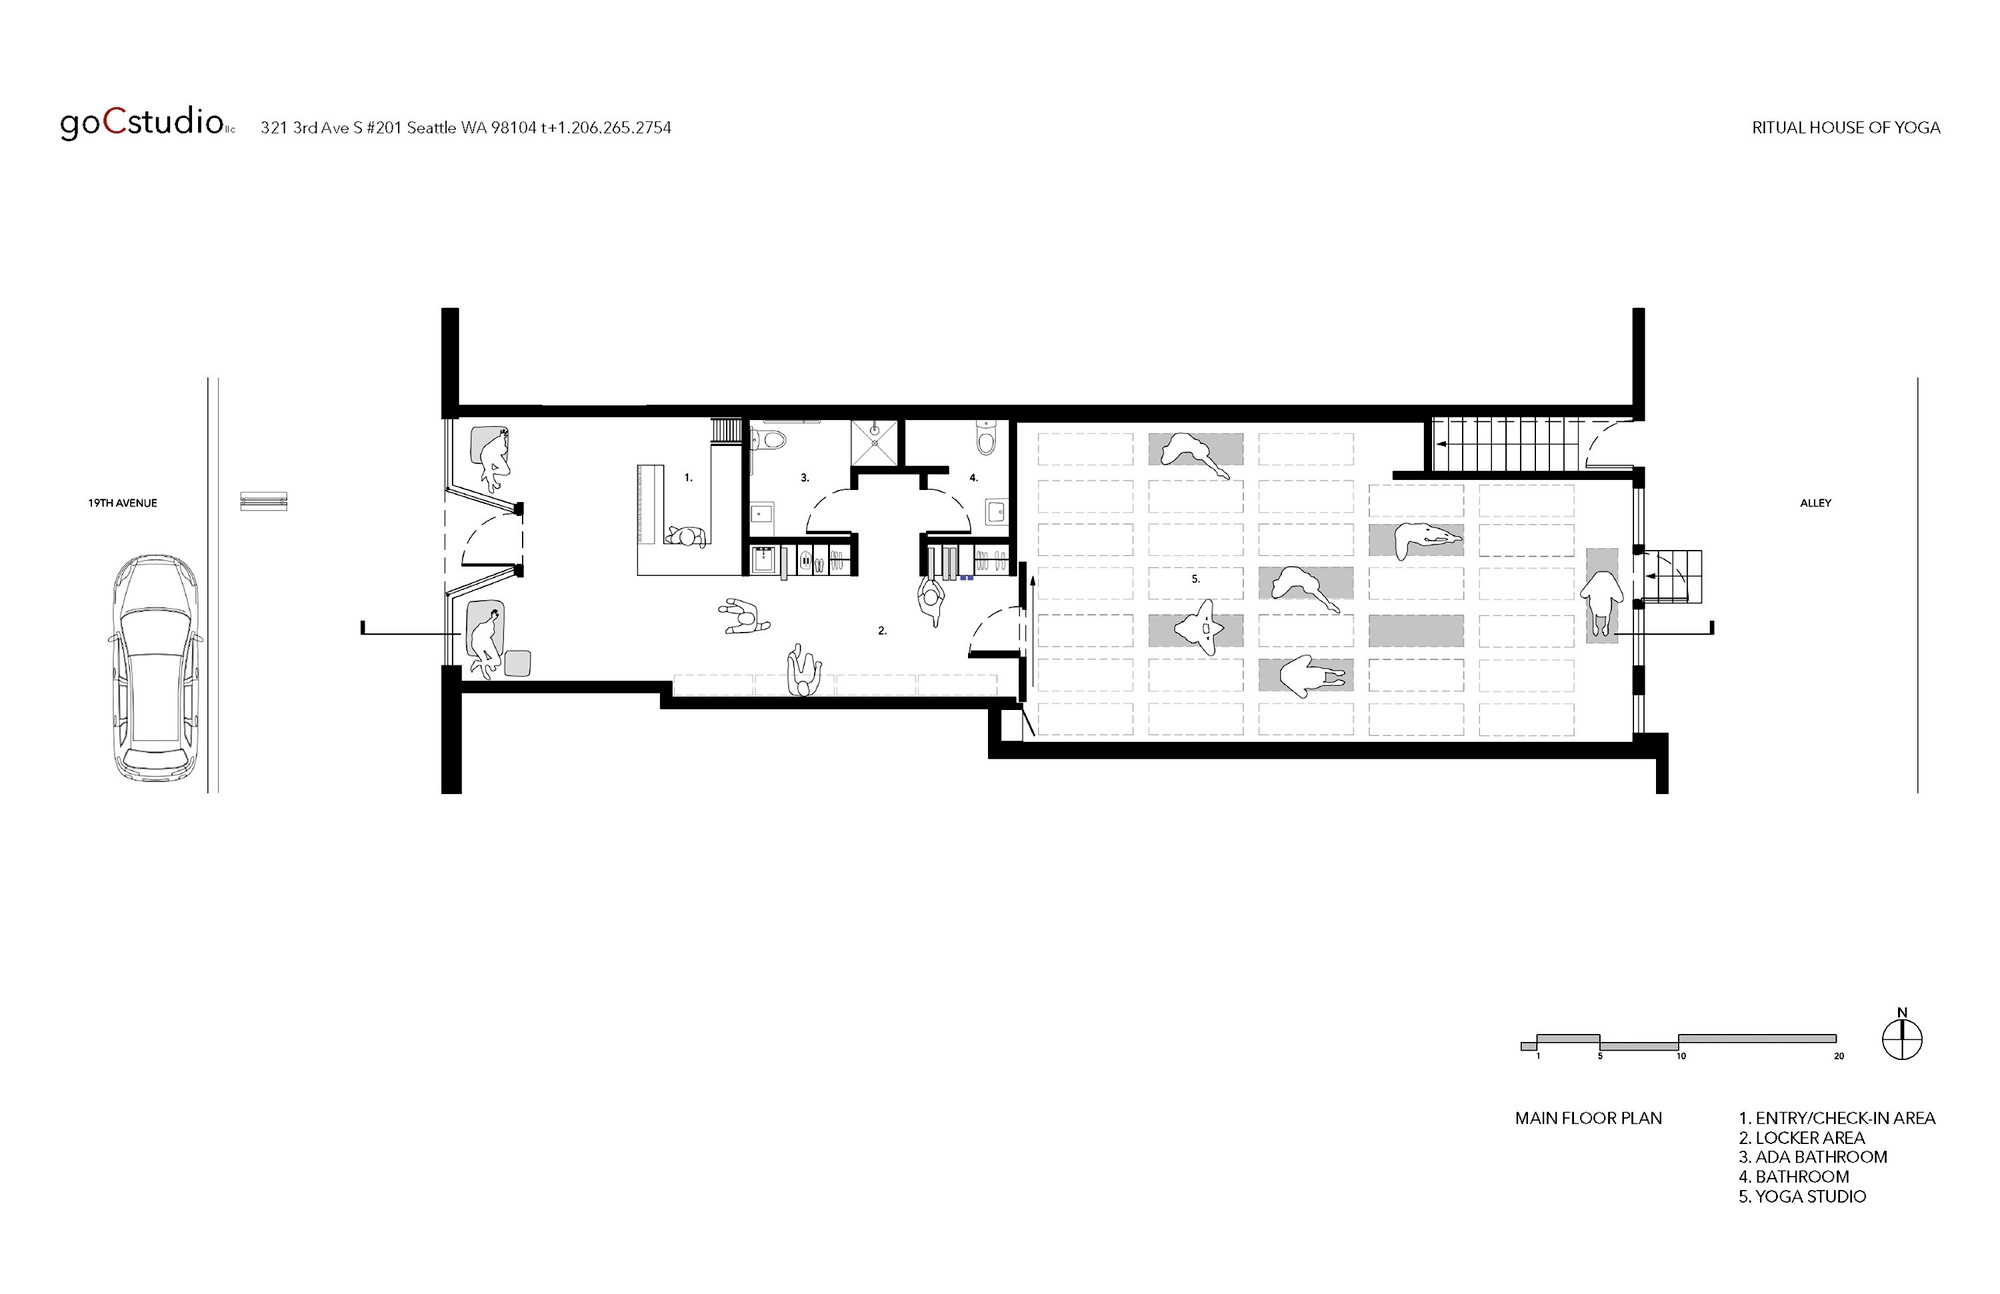 140 W Franklin Street Chapel Hill Nc 27516 as well Wpromotes New Diggs besides 5602fd22e58ece477400007a Ritual House Of Yoga Gocstudio Floor Plan furthermore Stock Photo Yoga Backbend Image22917610 also 10239859. on yoga studio floor plan